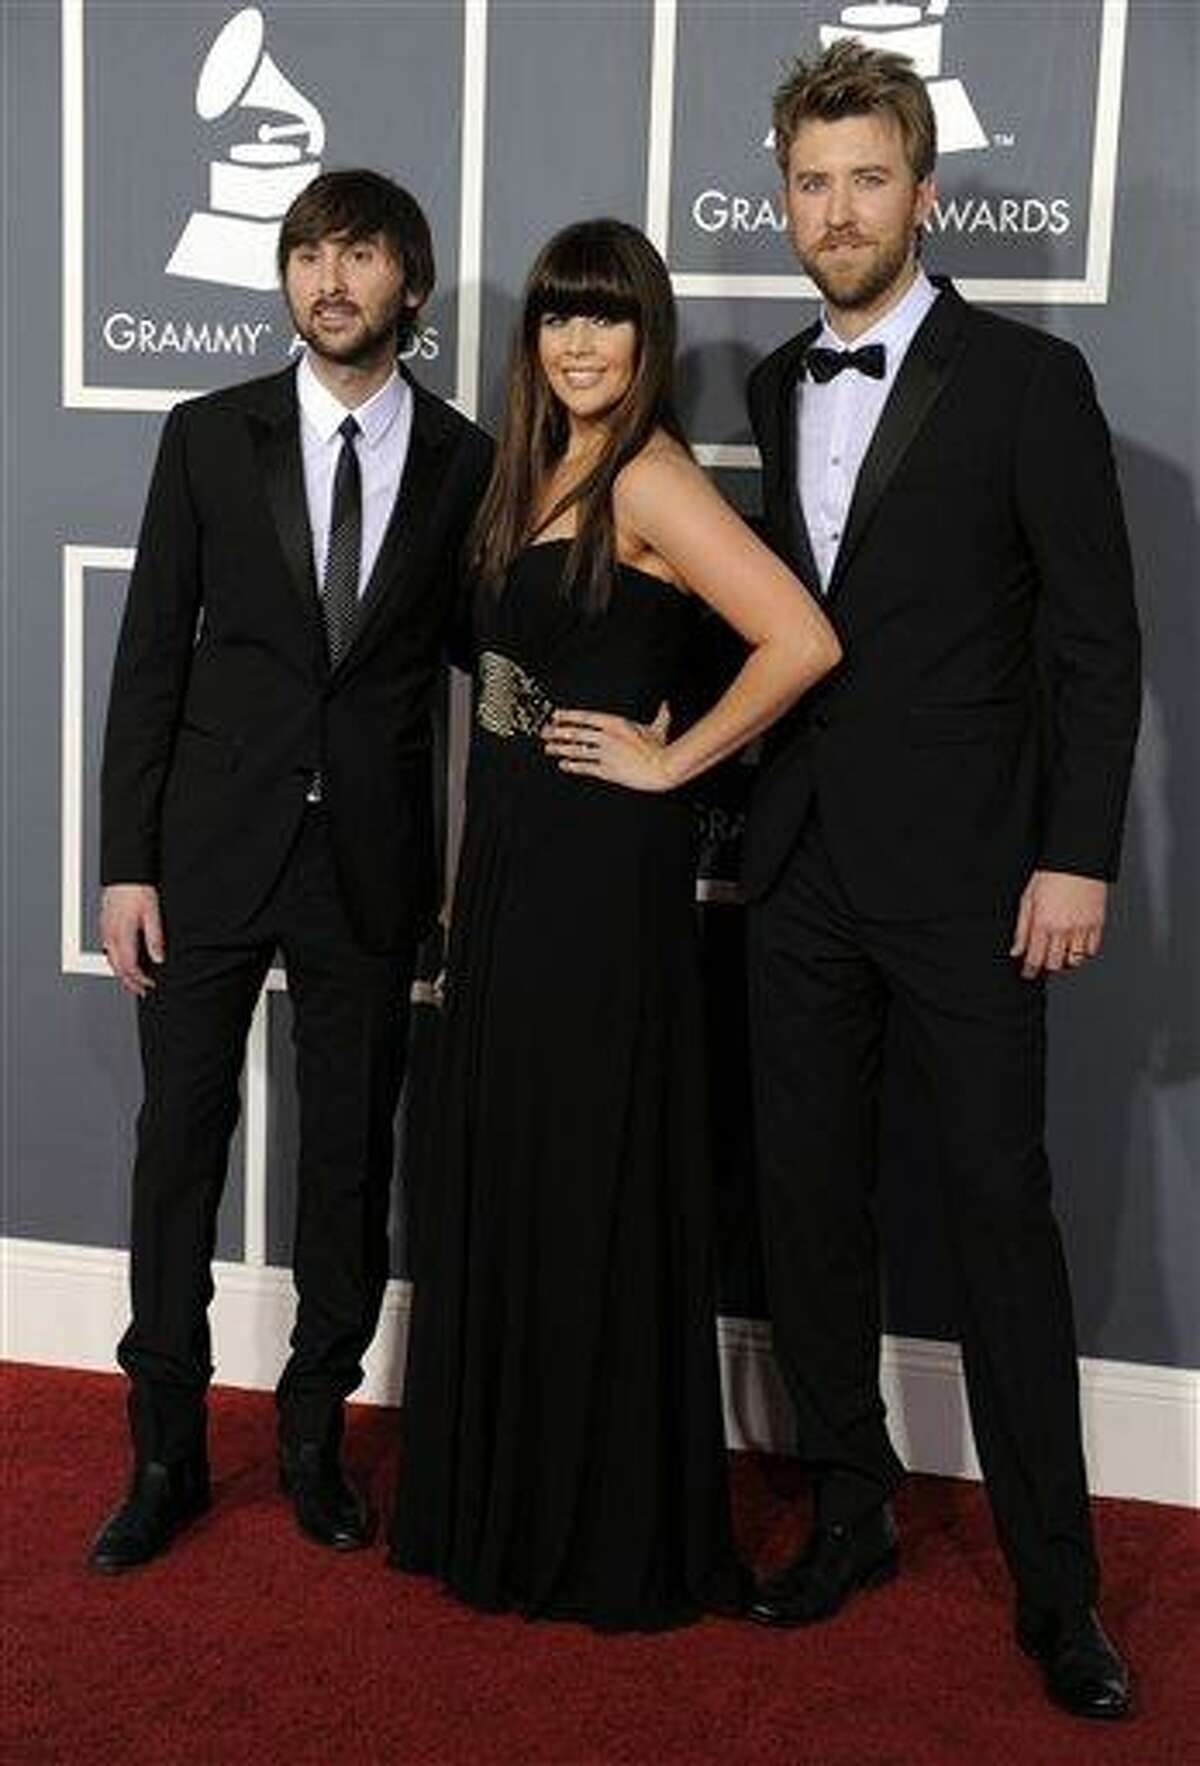 Lady Antebellum, from left, Dave Haywood, Hilary Scott, and Charles Kelley arrive at the 53rd annual Grammy Awards on Sunday, Feb. 13, 2011, in Los Angeles. (AP Photo/Chris Pizzello)